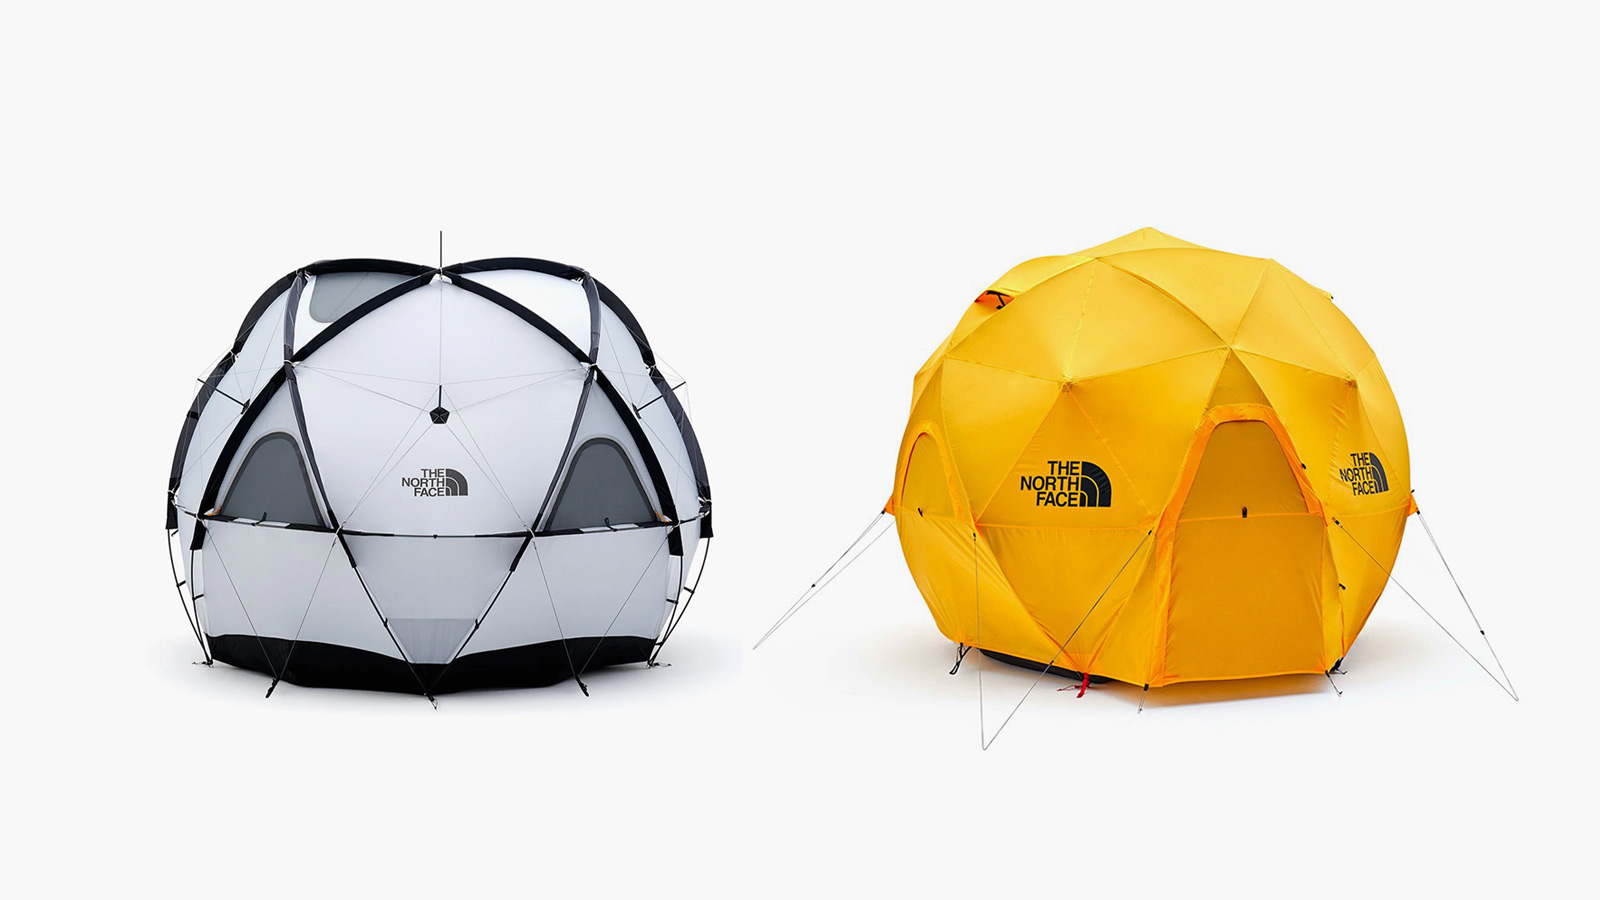 The-North Face Geodome 4 Tent